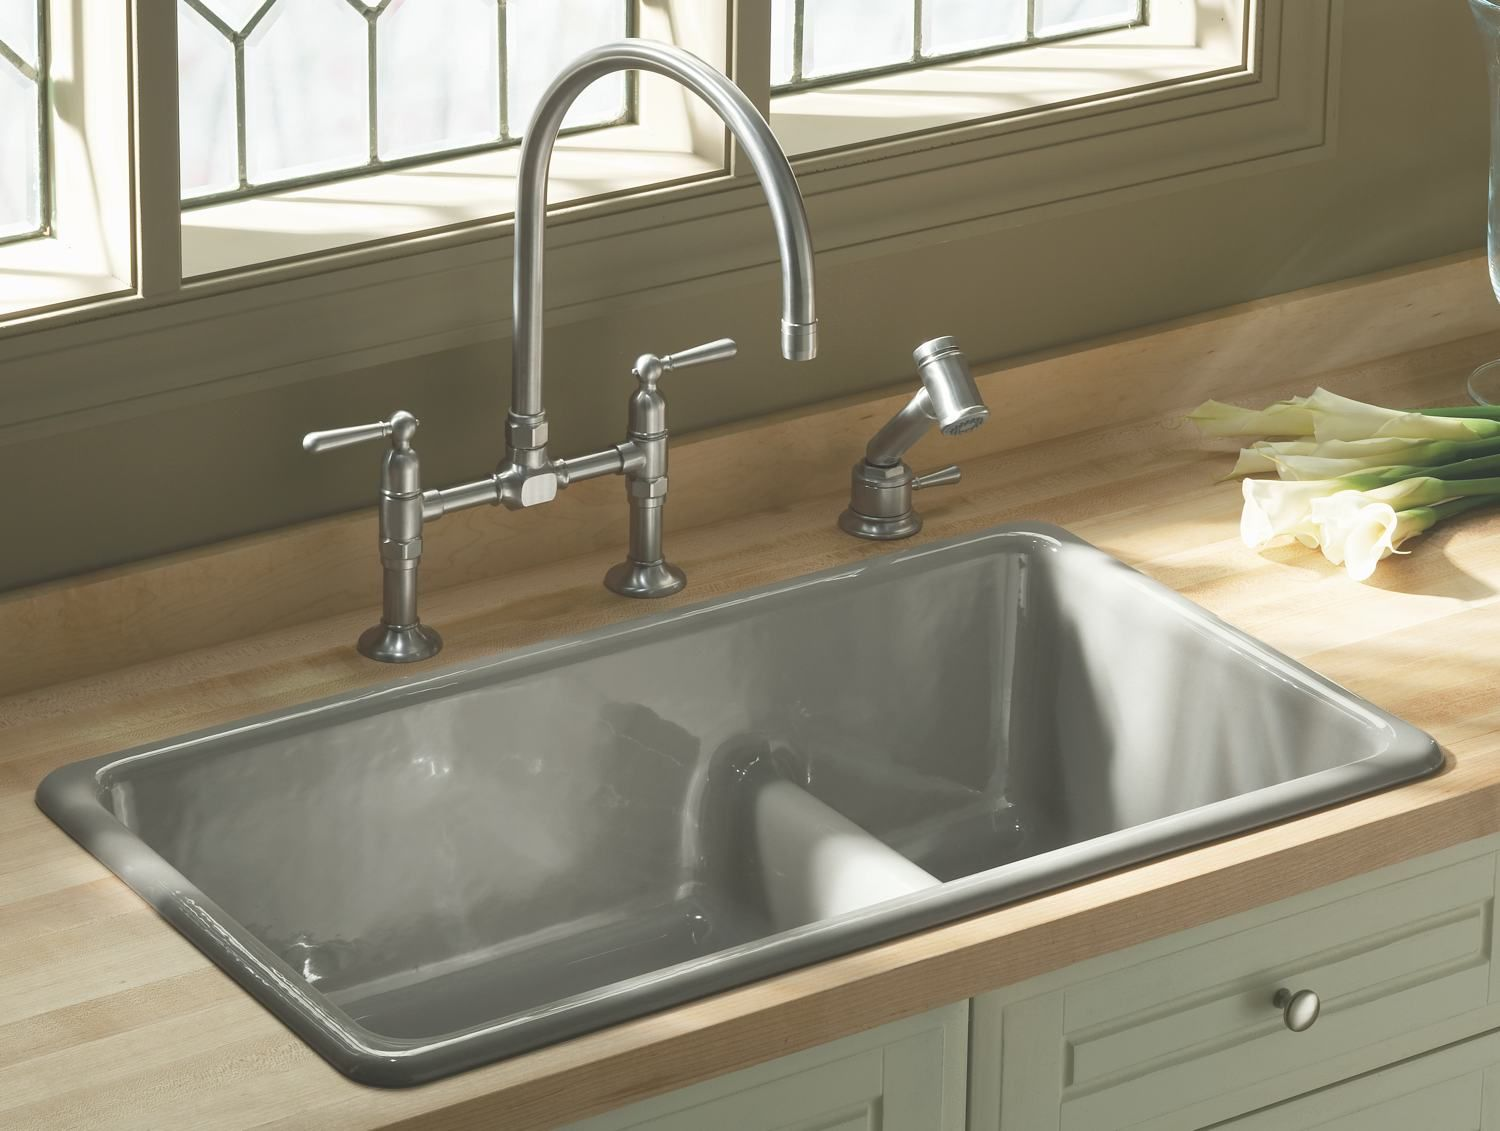 Kohler Kitchen Sinks With A Decorative Shape